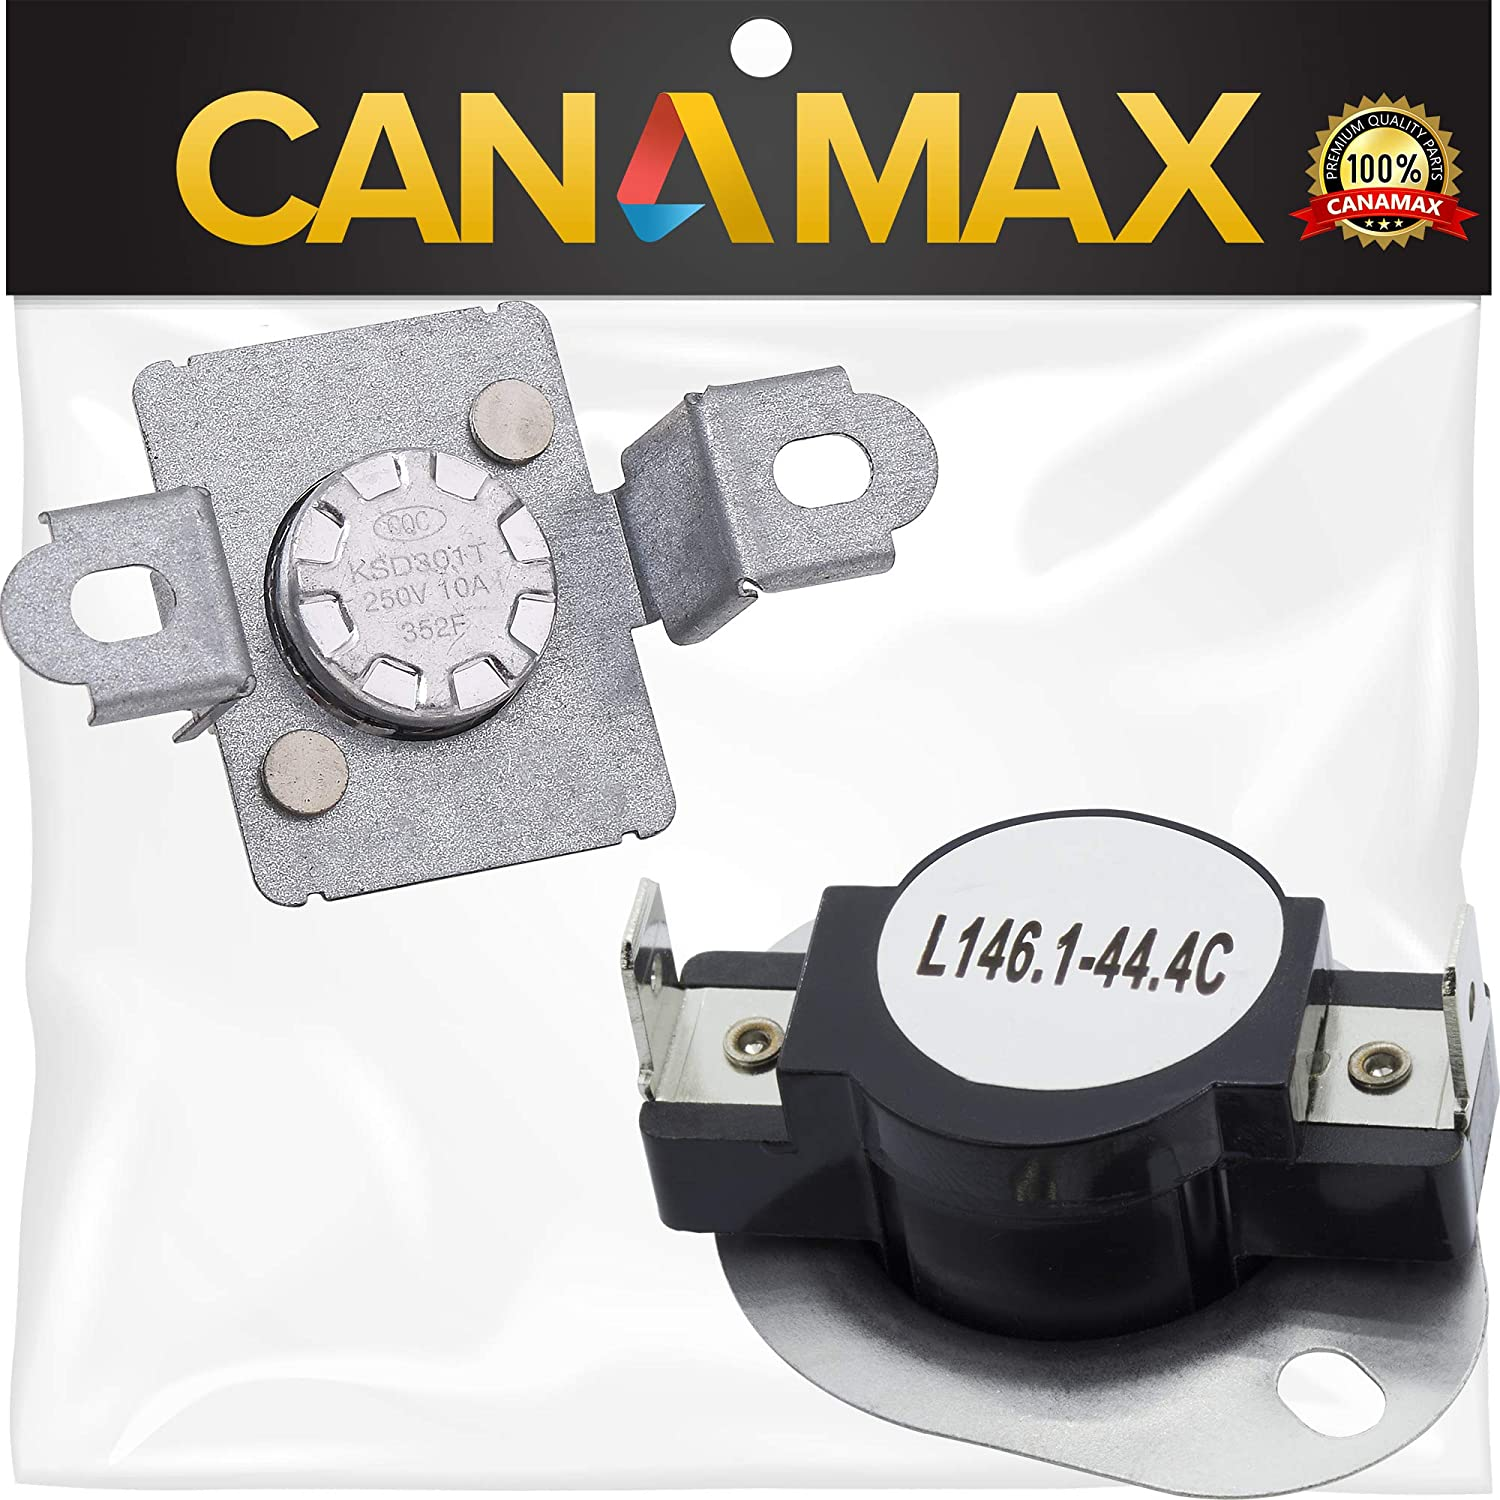 279973 Dryer Thermal Cut-Off Fuse Kit Premium Replacement by Canamax - Compatible with Whirlpool & Kenmore Dryers - Replaces 3391913 8318314 AP3094323